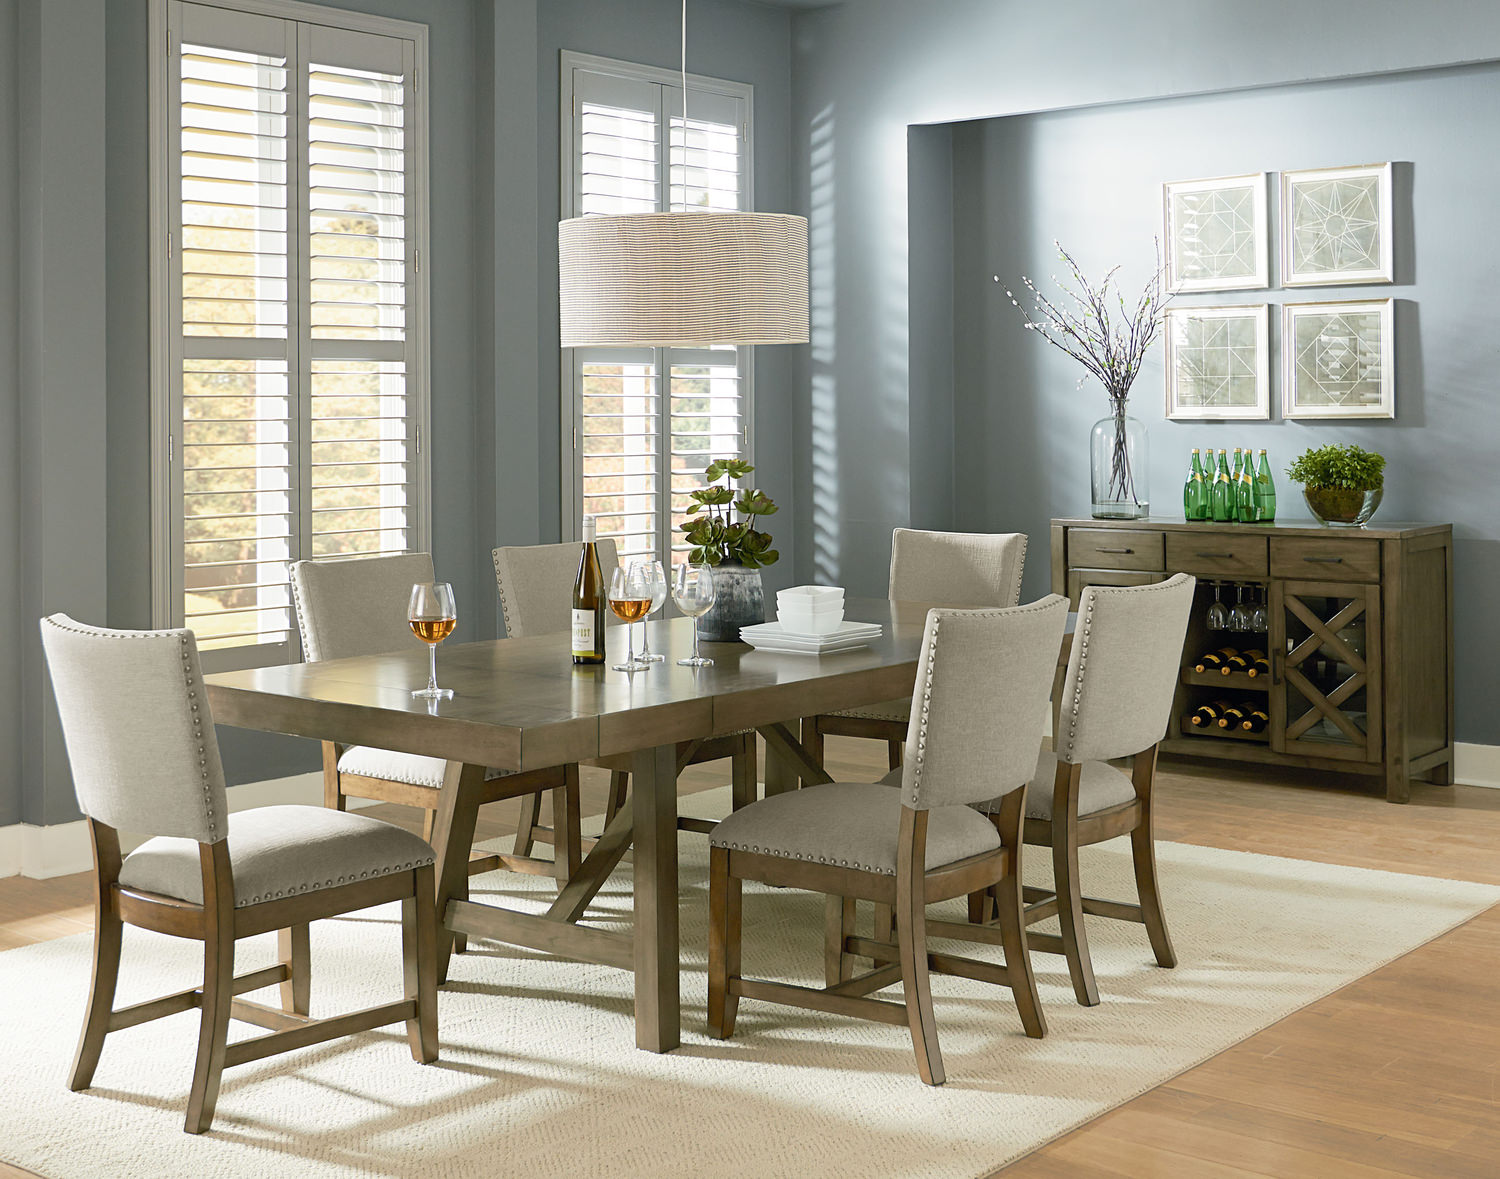 Dining Sets  Kitchen  Dining Room Sets  HOM Furniture - Living room and dining room sets